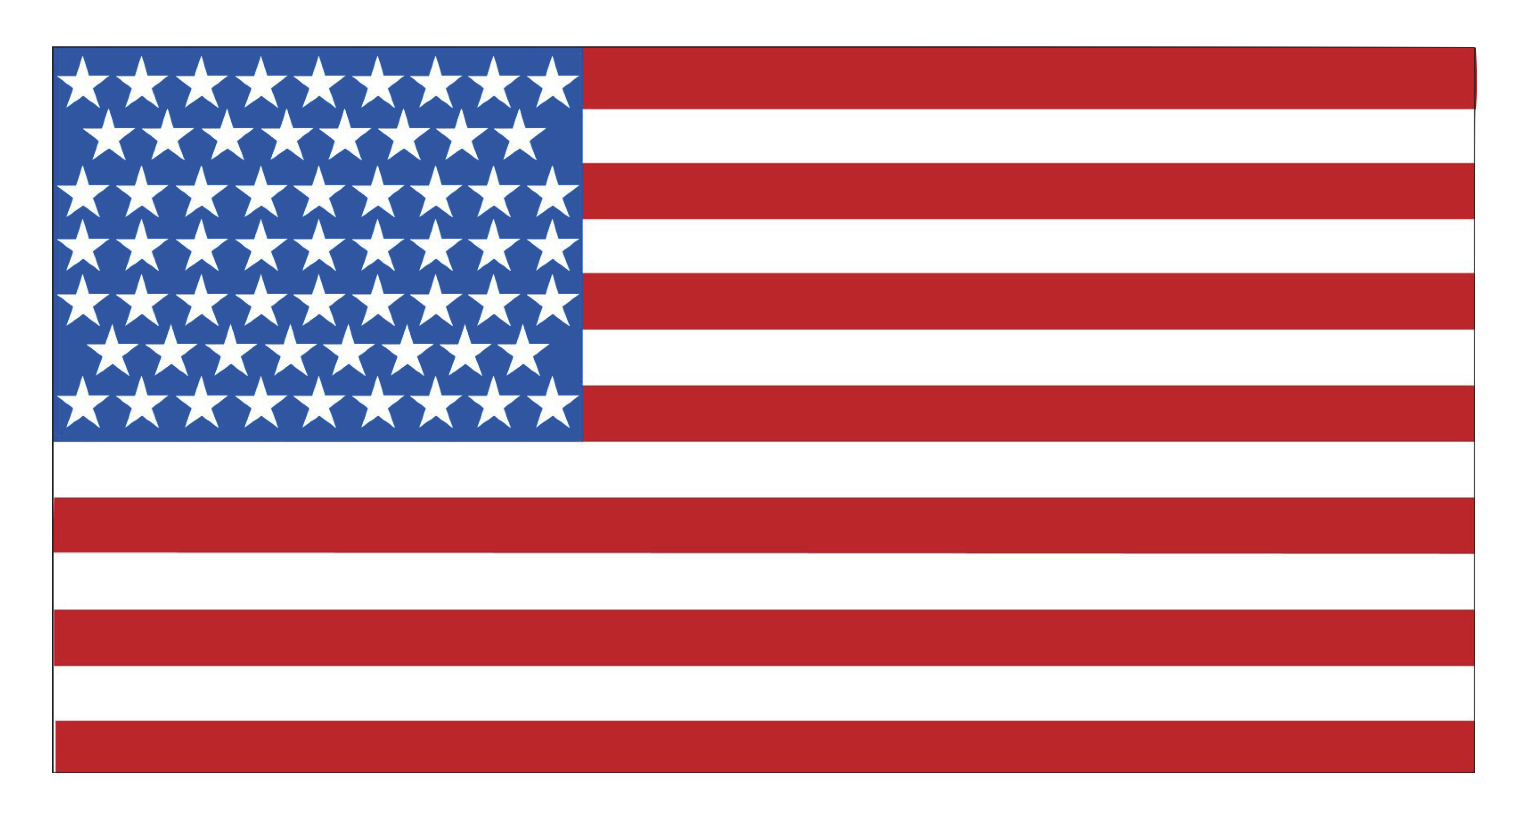 American flag clipart png.